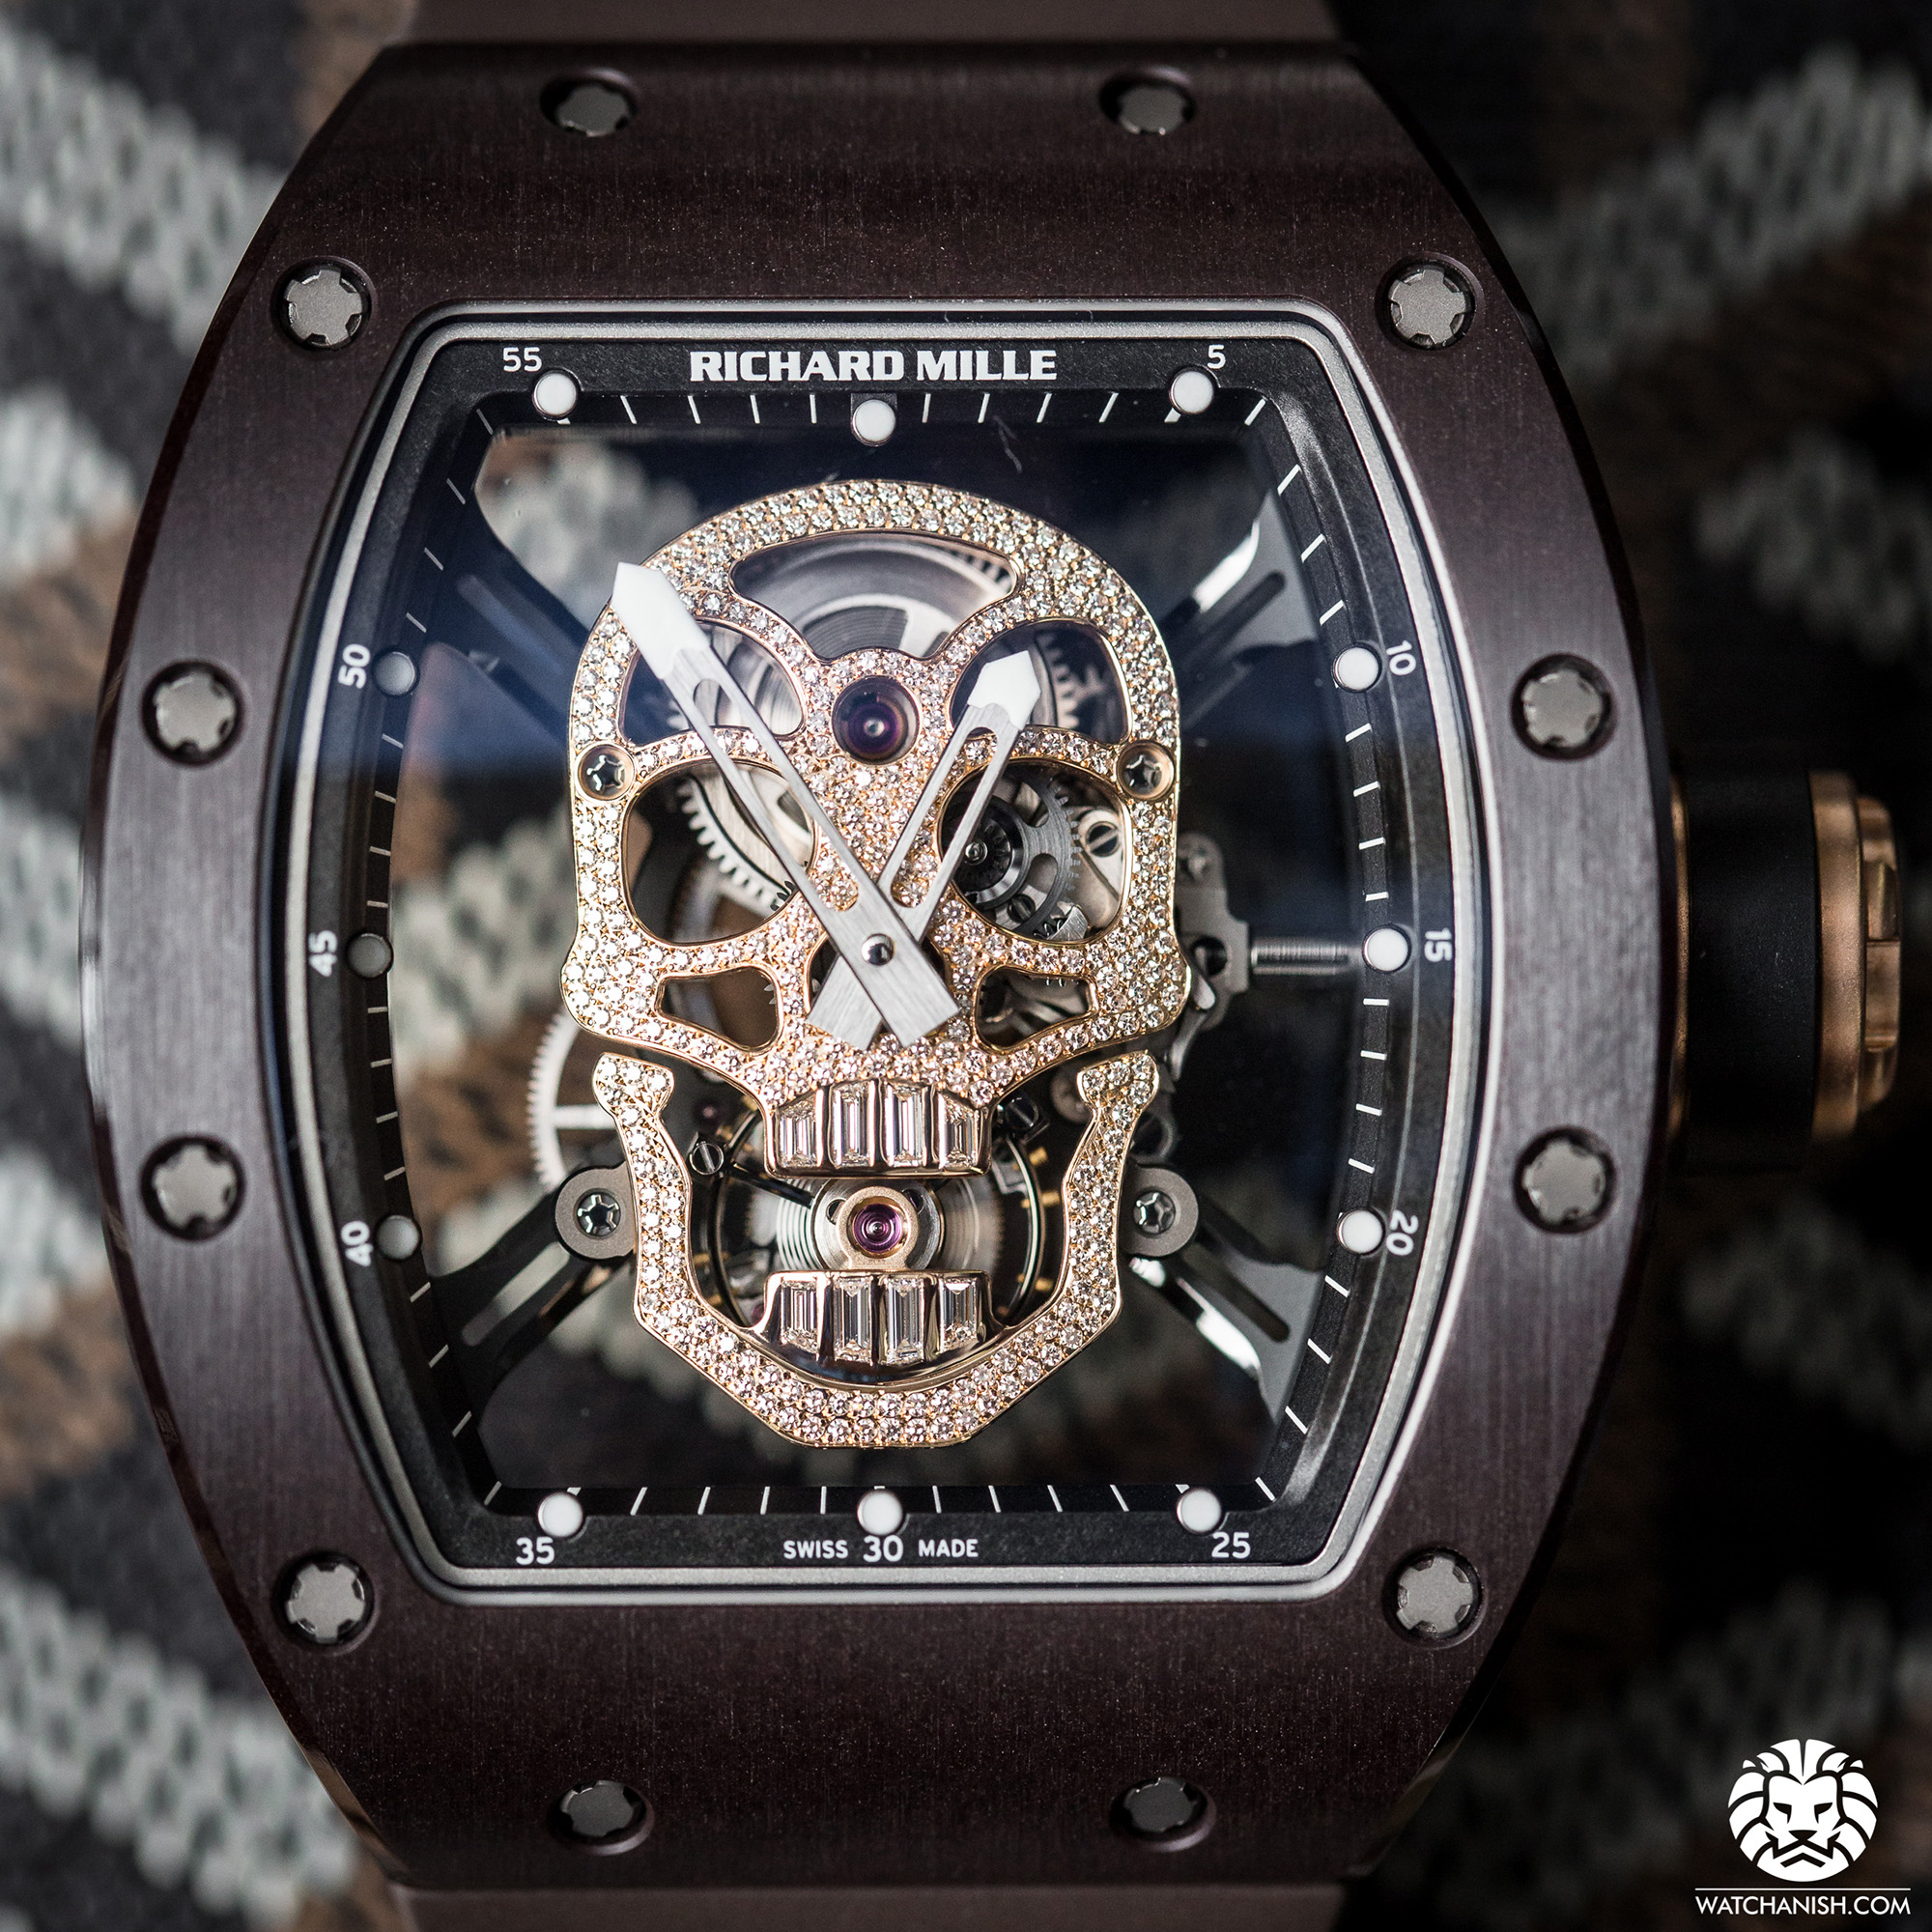 The RM56-02 by Richard Mille is a Horological Masterpiece